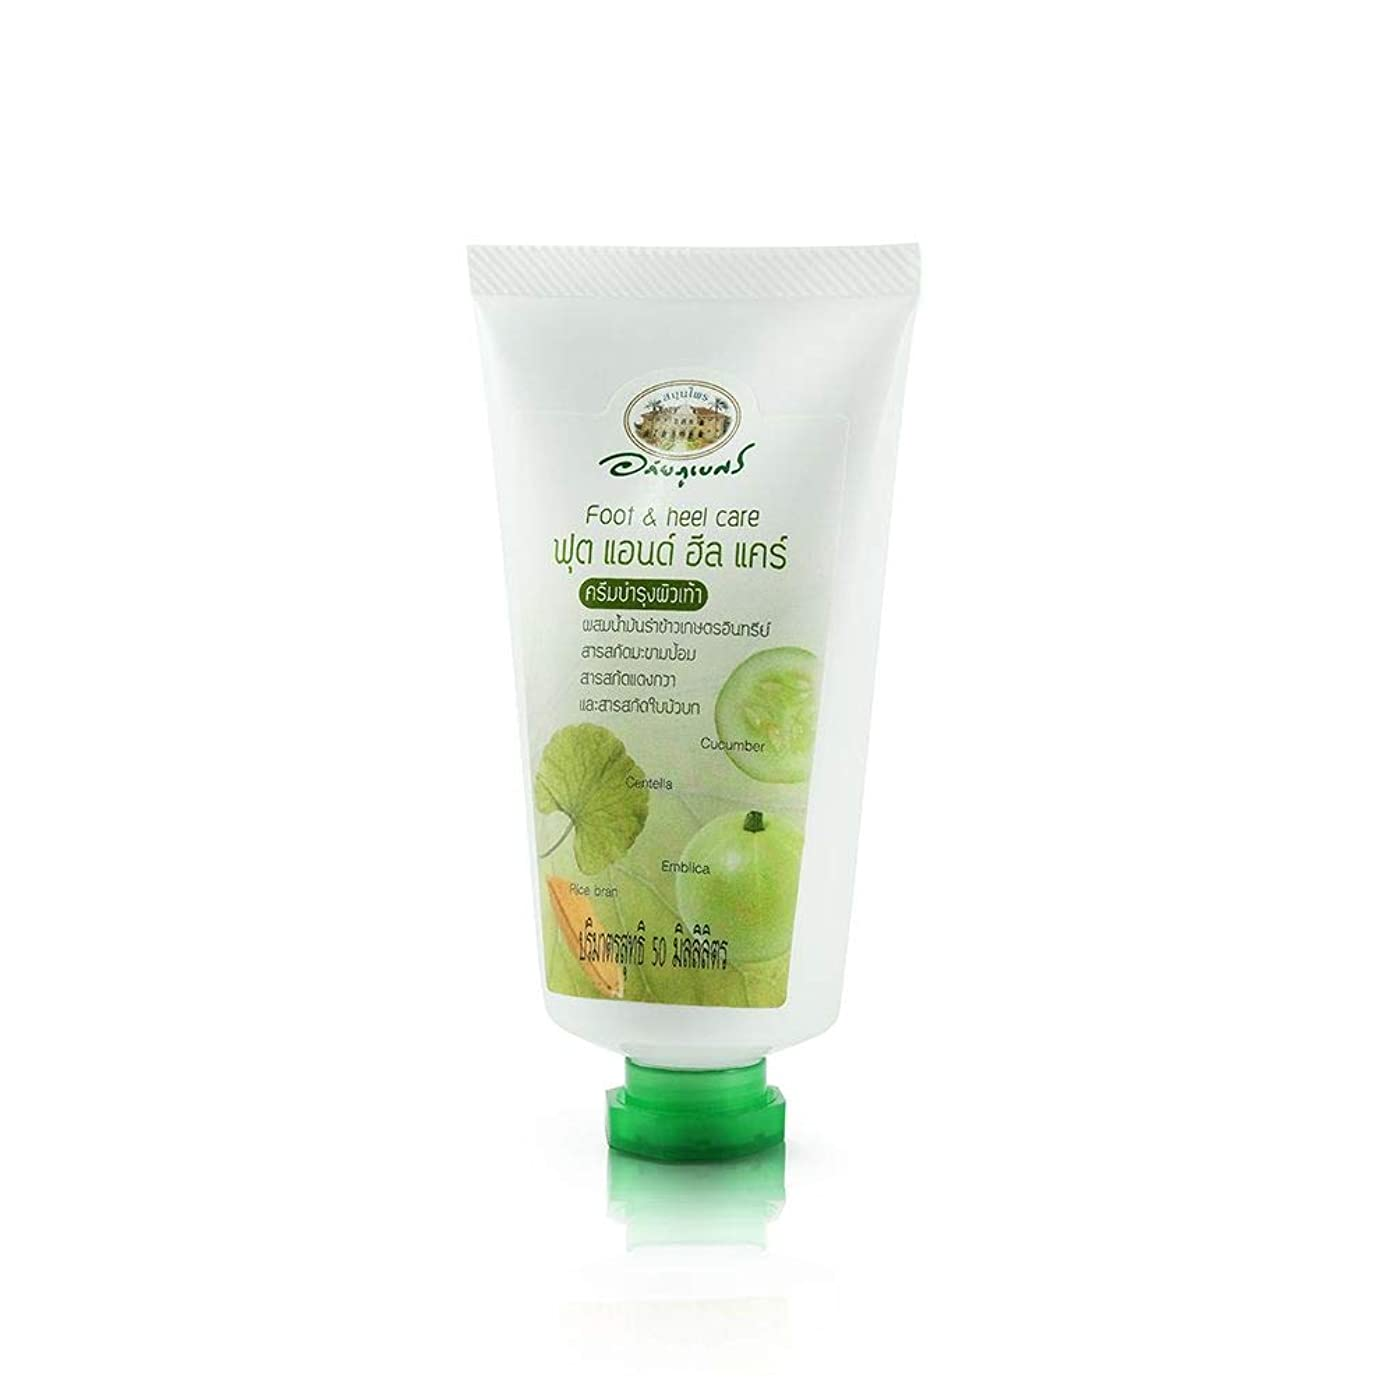 やろう葬儀庭園Abhaibhubejhr Cucumber Rice Bran Oil Centella Foot And Heel Care Cream 50ml. Abhaibhubejhrキュウリ米ぬか油Centellaフットアンドヒールケアクリーム50ml。